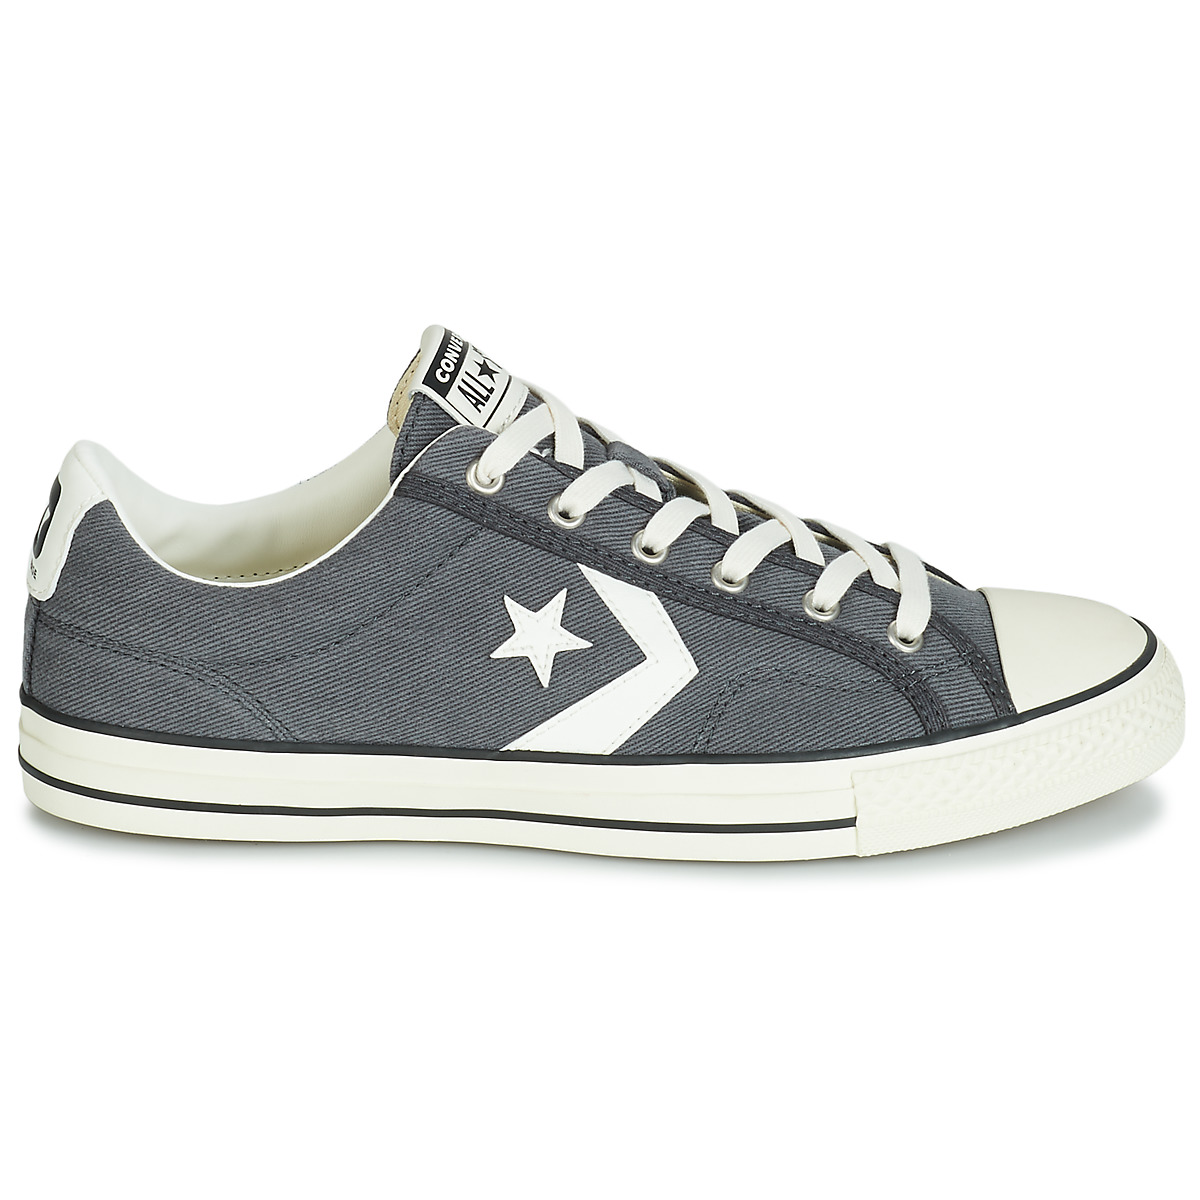 Converse STAR PLAYER VINTAGE CANVAS OX women's Shoes (Trainers) in Grey